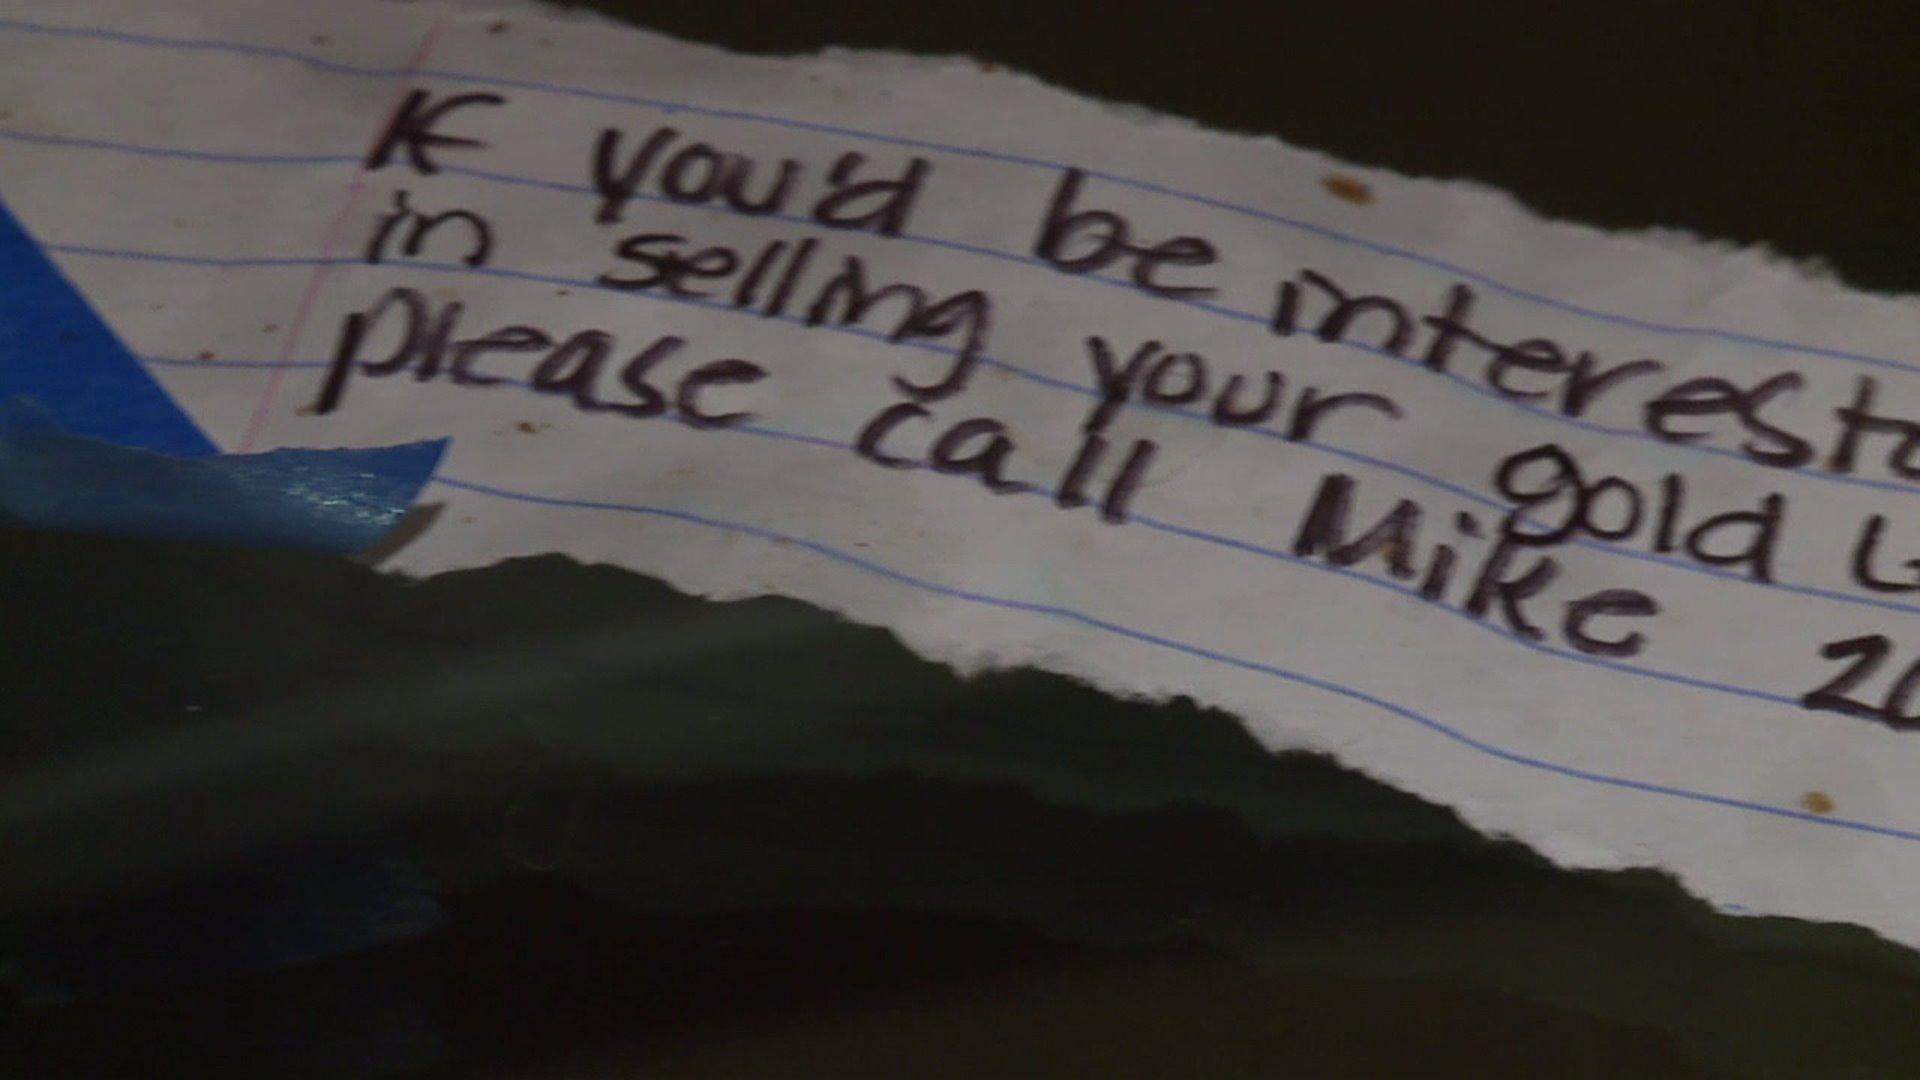 Mysterious Notes Spark Concern in Washington Neighborhood